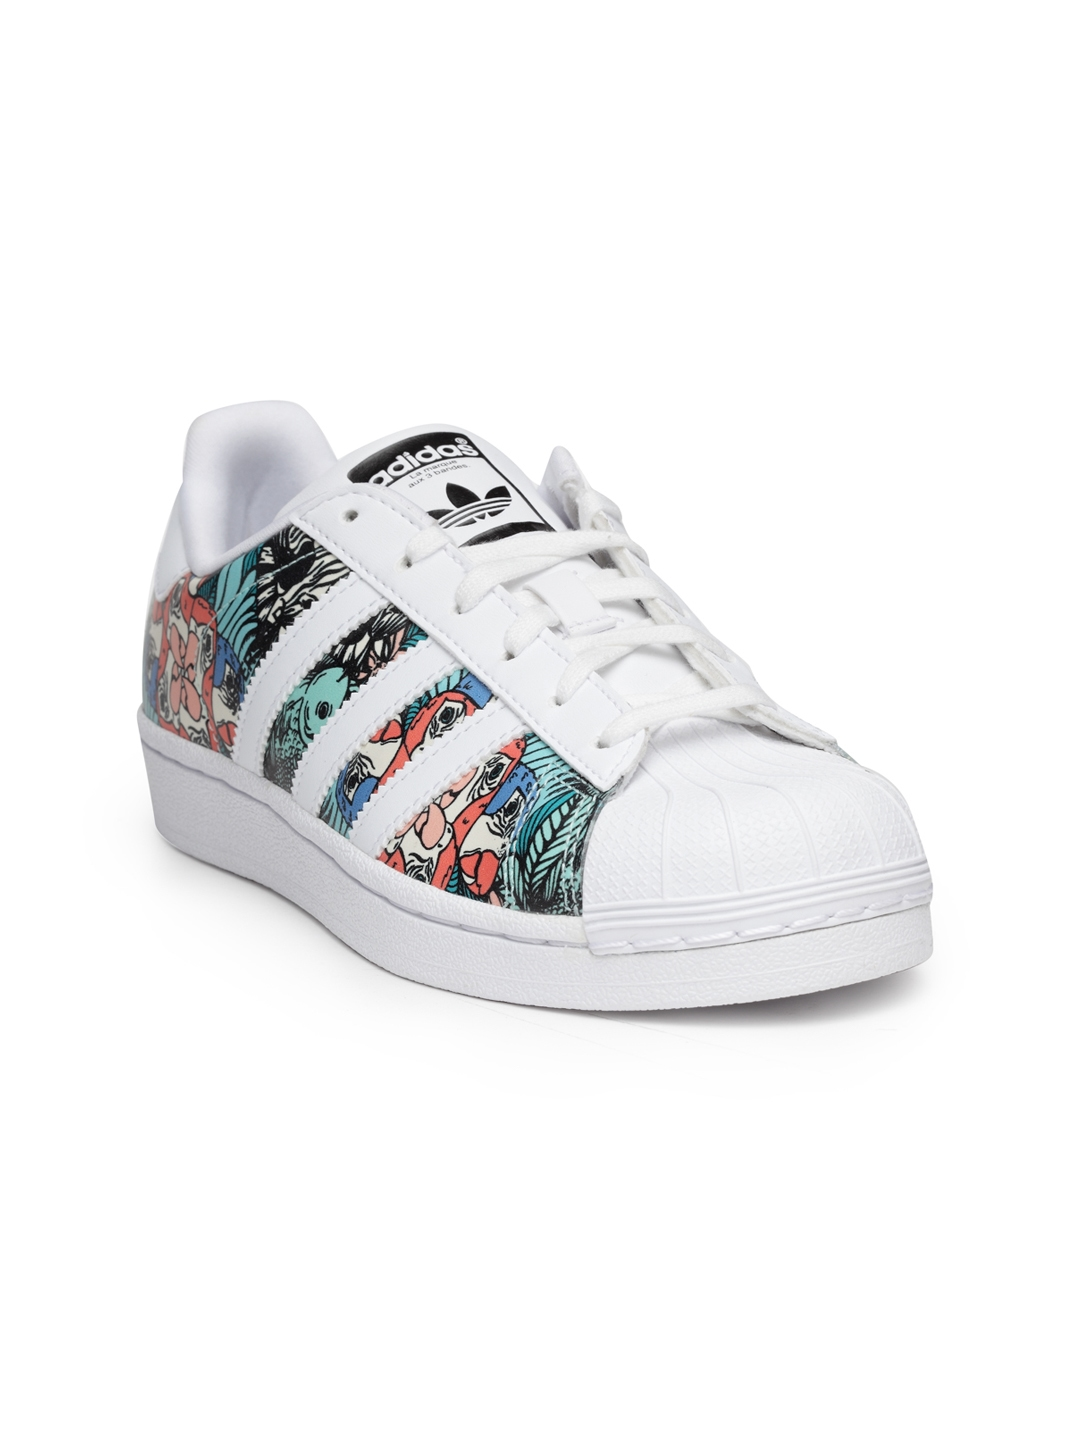 ac5c9d46ad0 Adidas Originals Kids White   Sea Green Superstar J Printed Sneakers